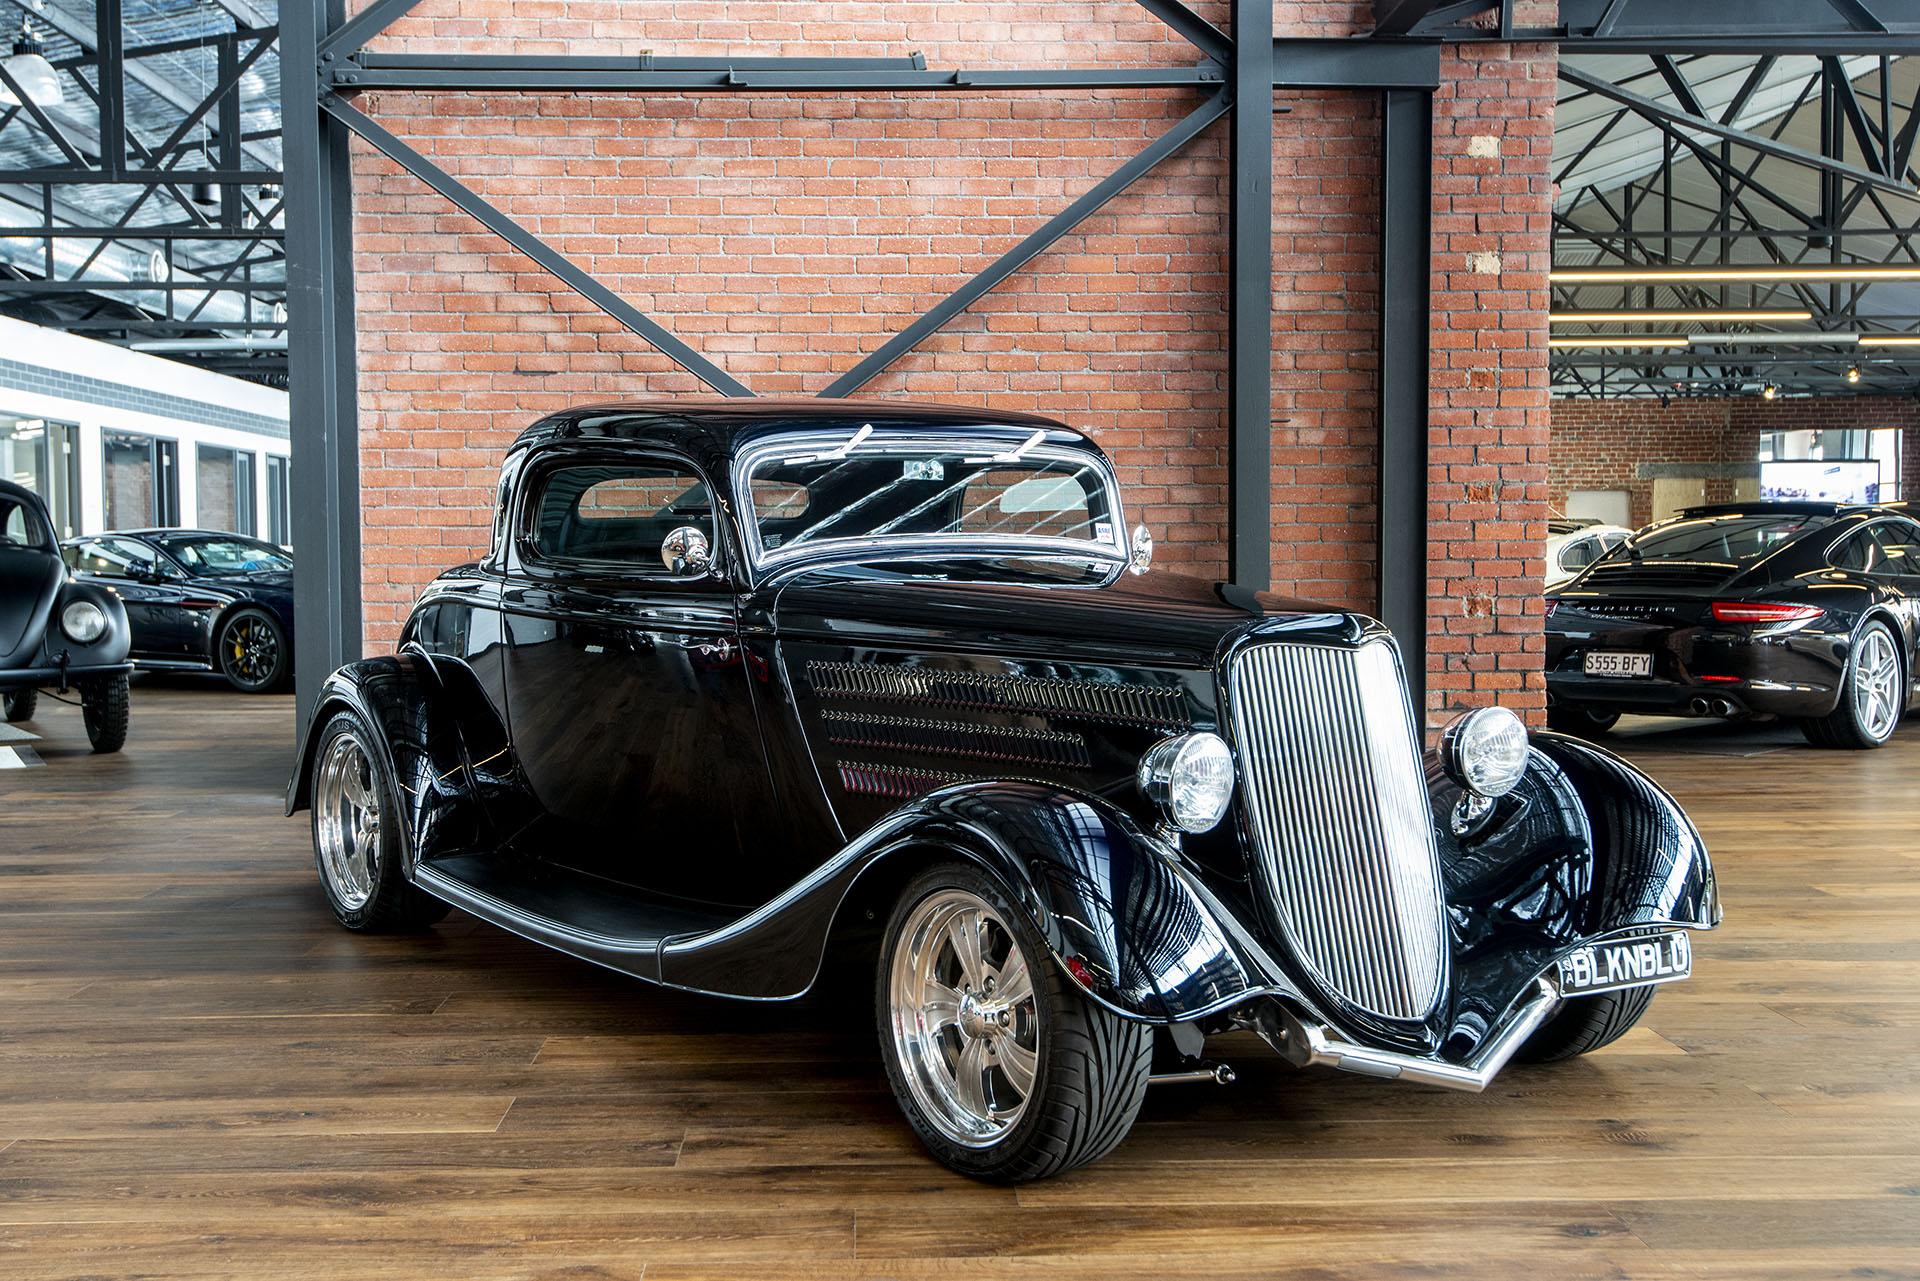 1934 Ford 3 Window Coupe Hot Rod - Richmonds - Classic and Prestige